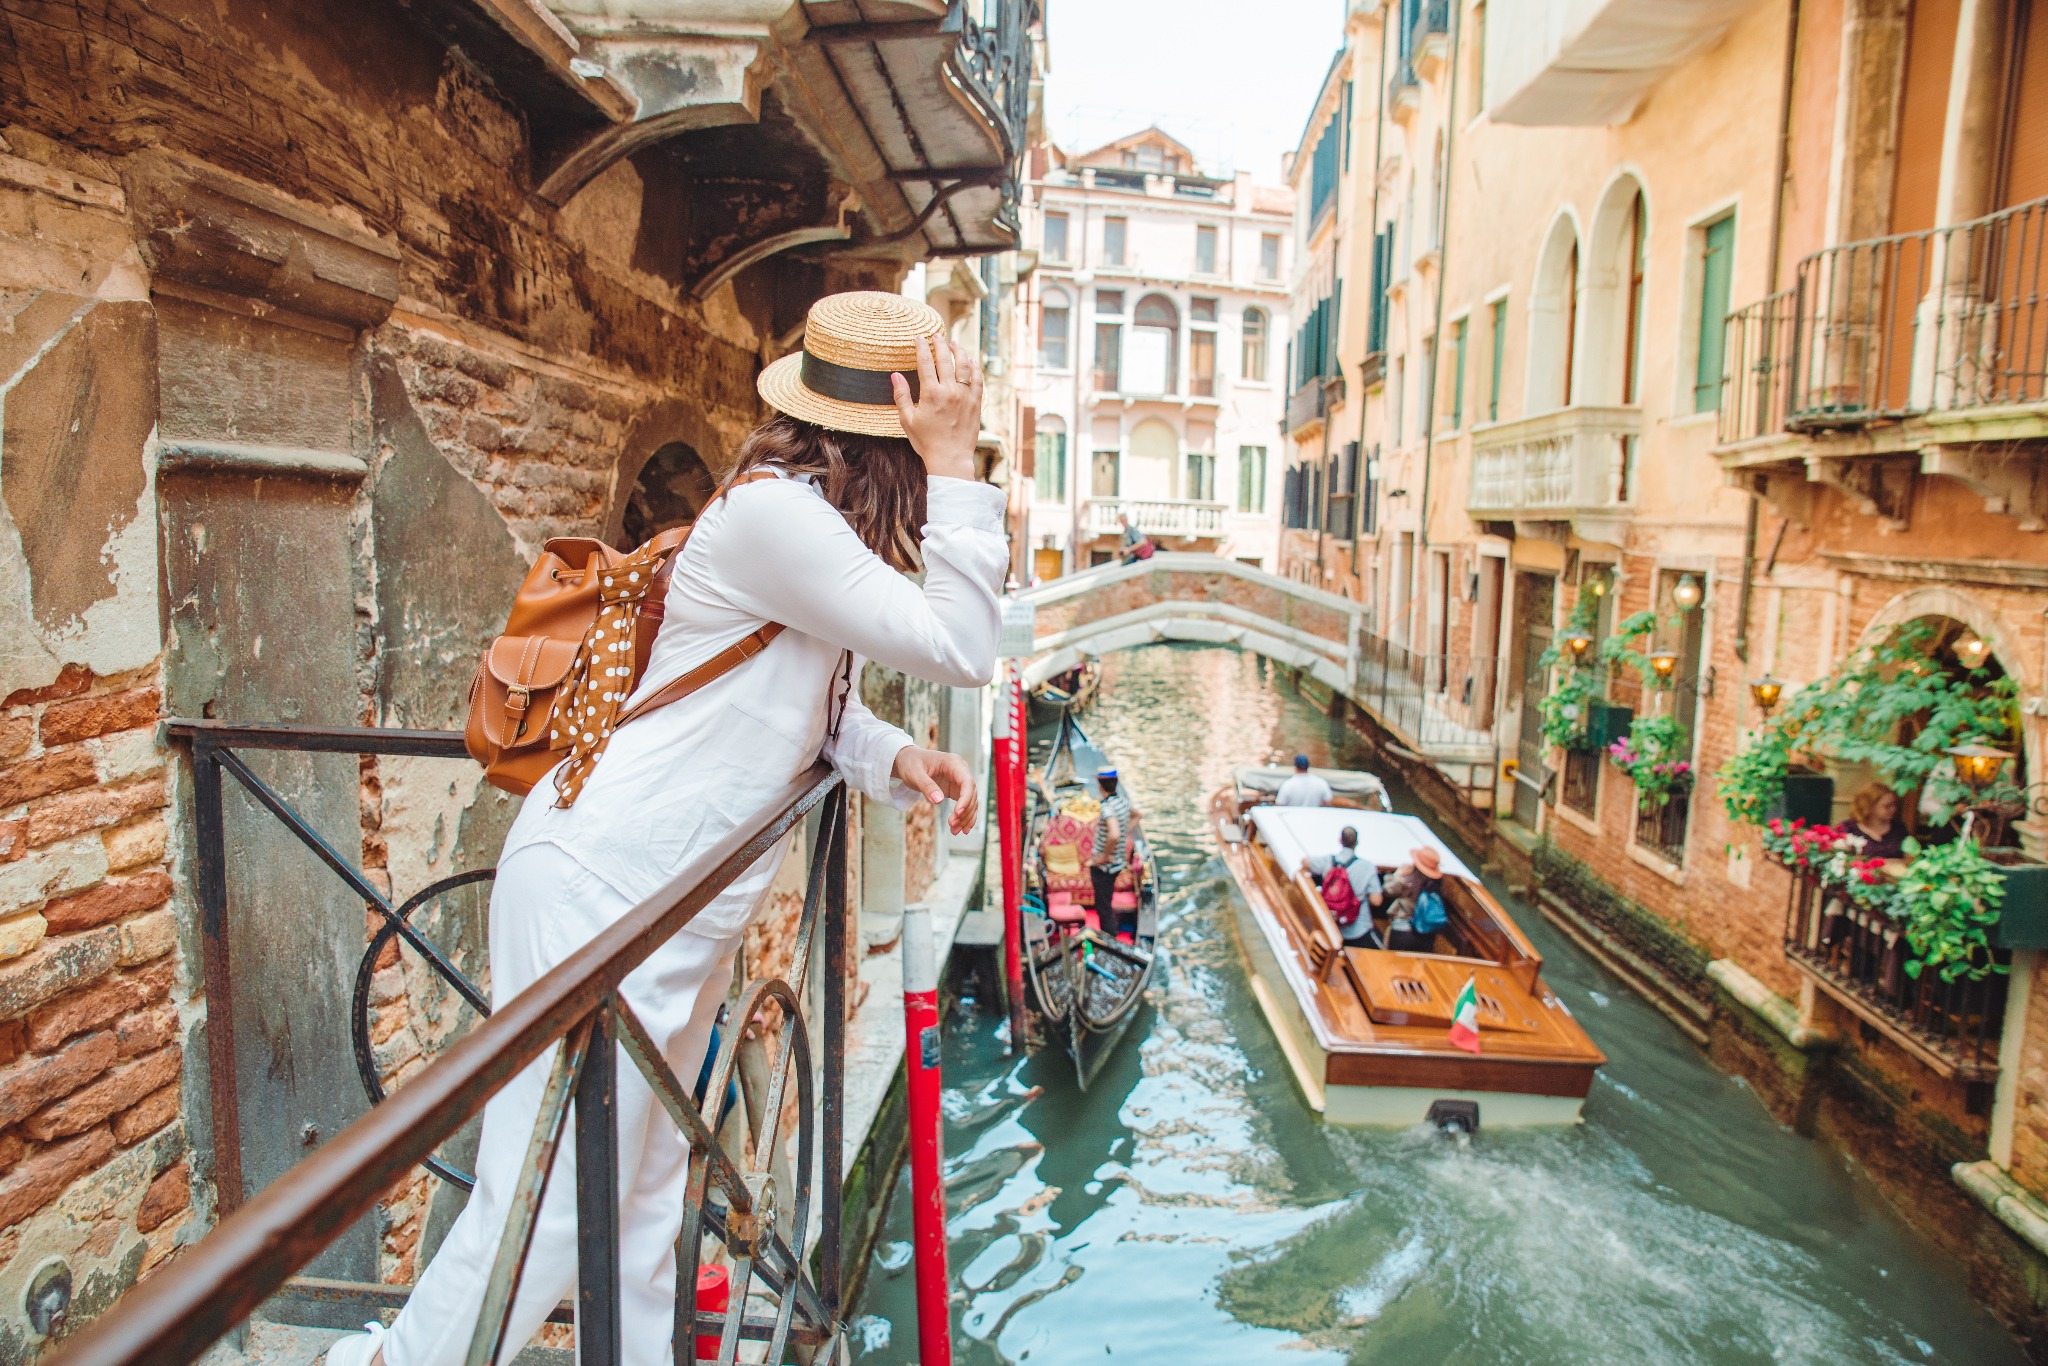 Italian Citizenship For Beginners: Turn Your Heritage Into A Passport